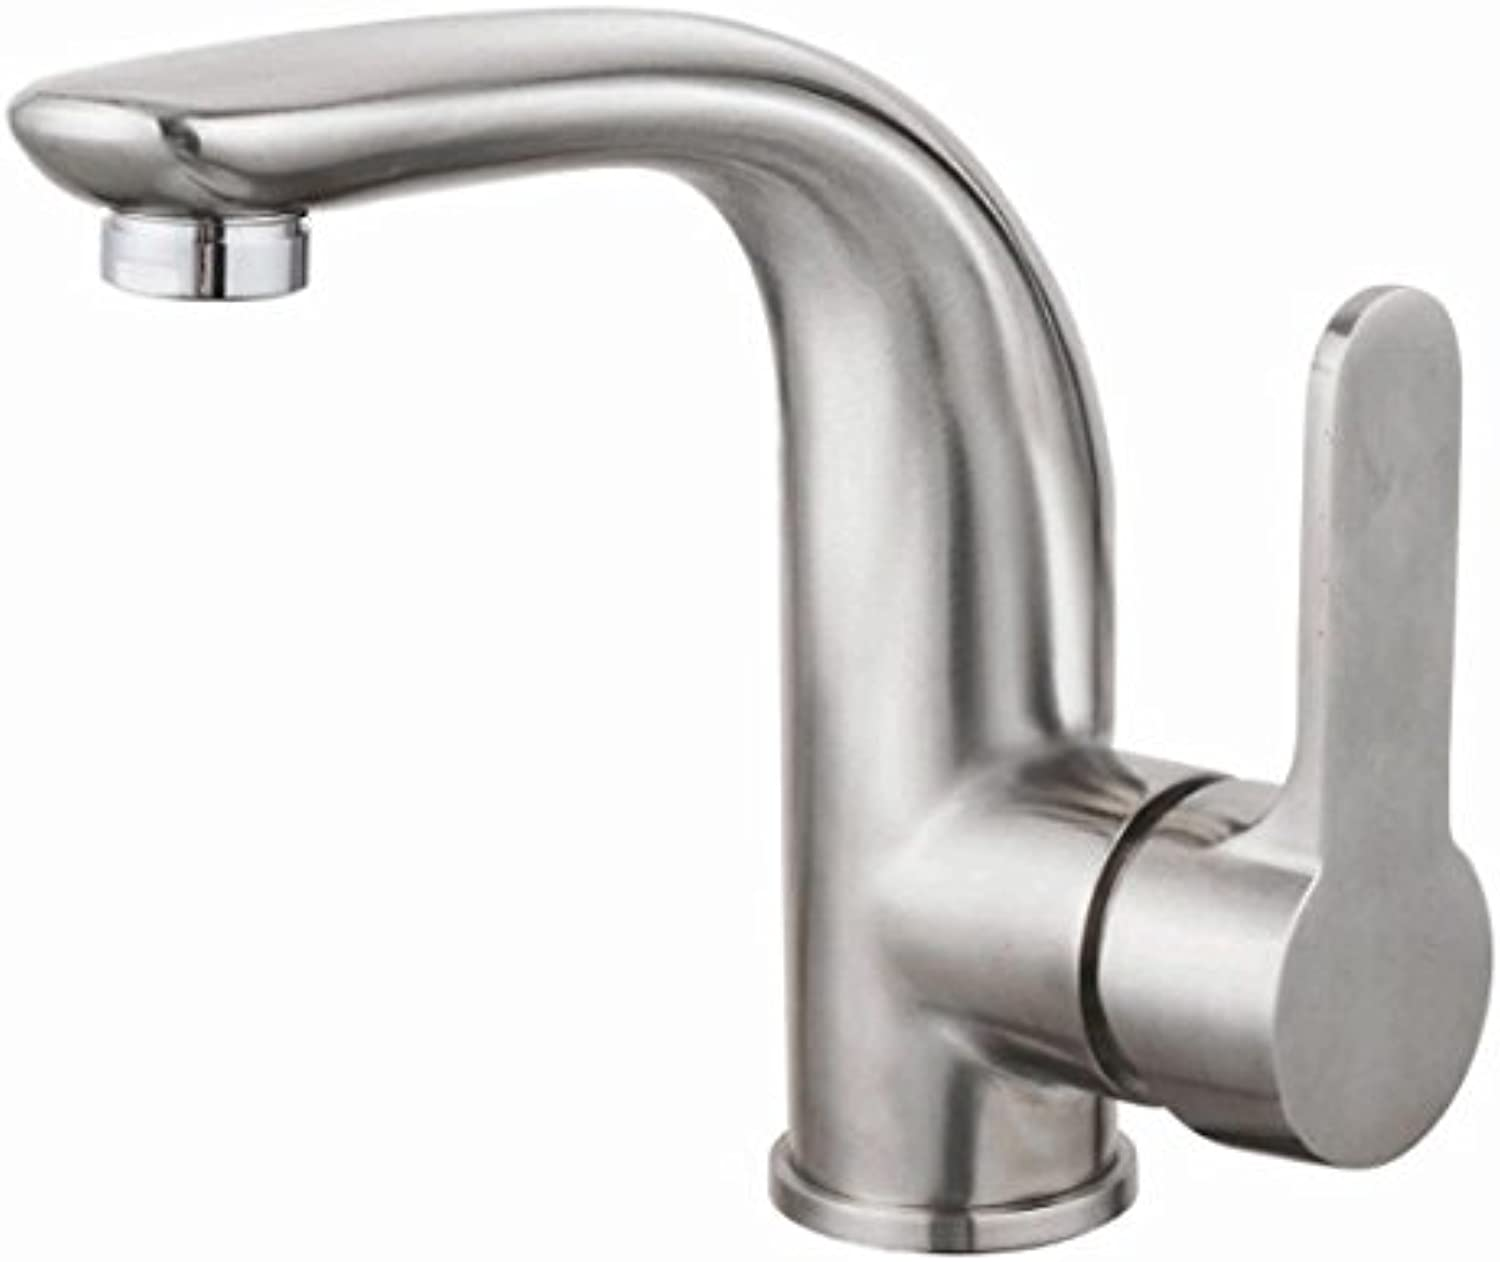 Hlluya Professional Sink Mixer Tap Kitchen Faucet 304 Stainless Steel Basin, the basin mixer, the mixing of hot and cold water faucets, Bathroom Cabinet Faucet